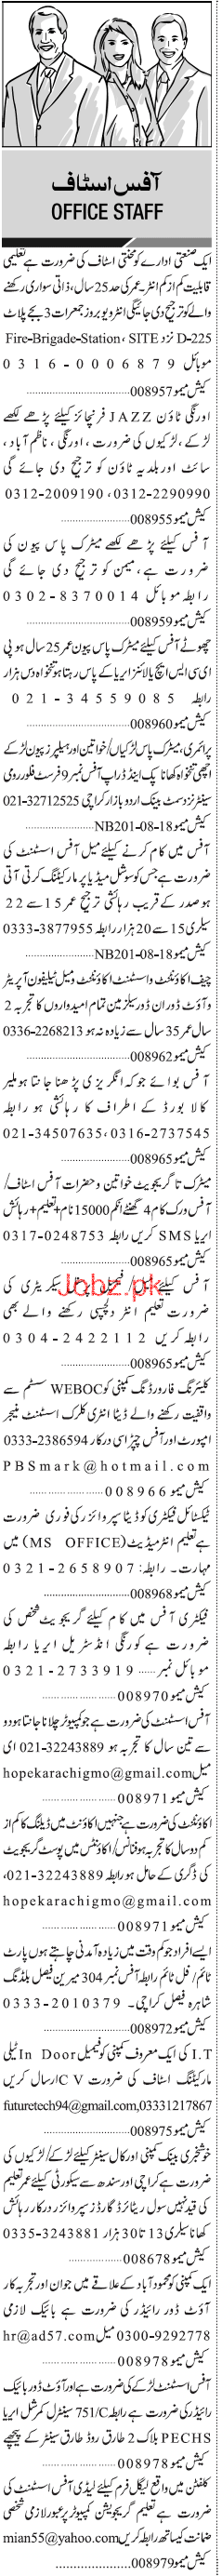 Chief Accountant, Office Assistants Job Opportunity